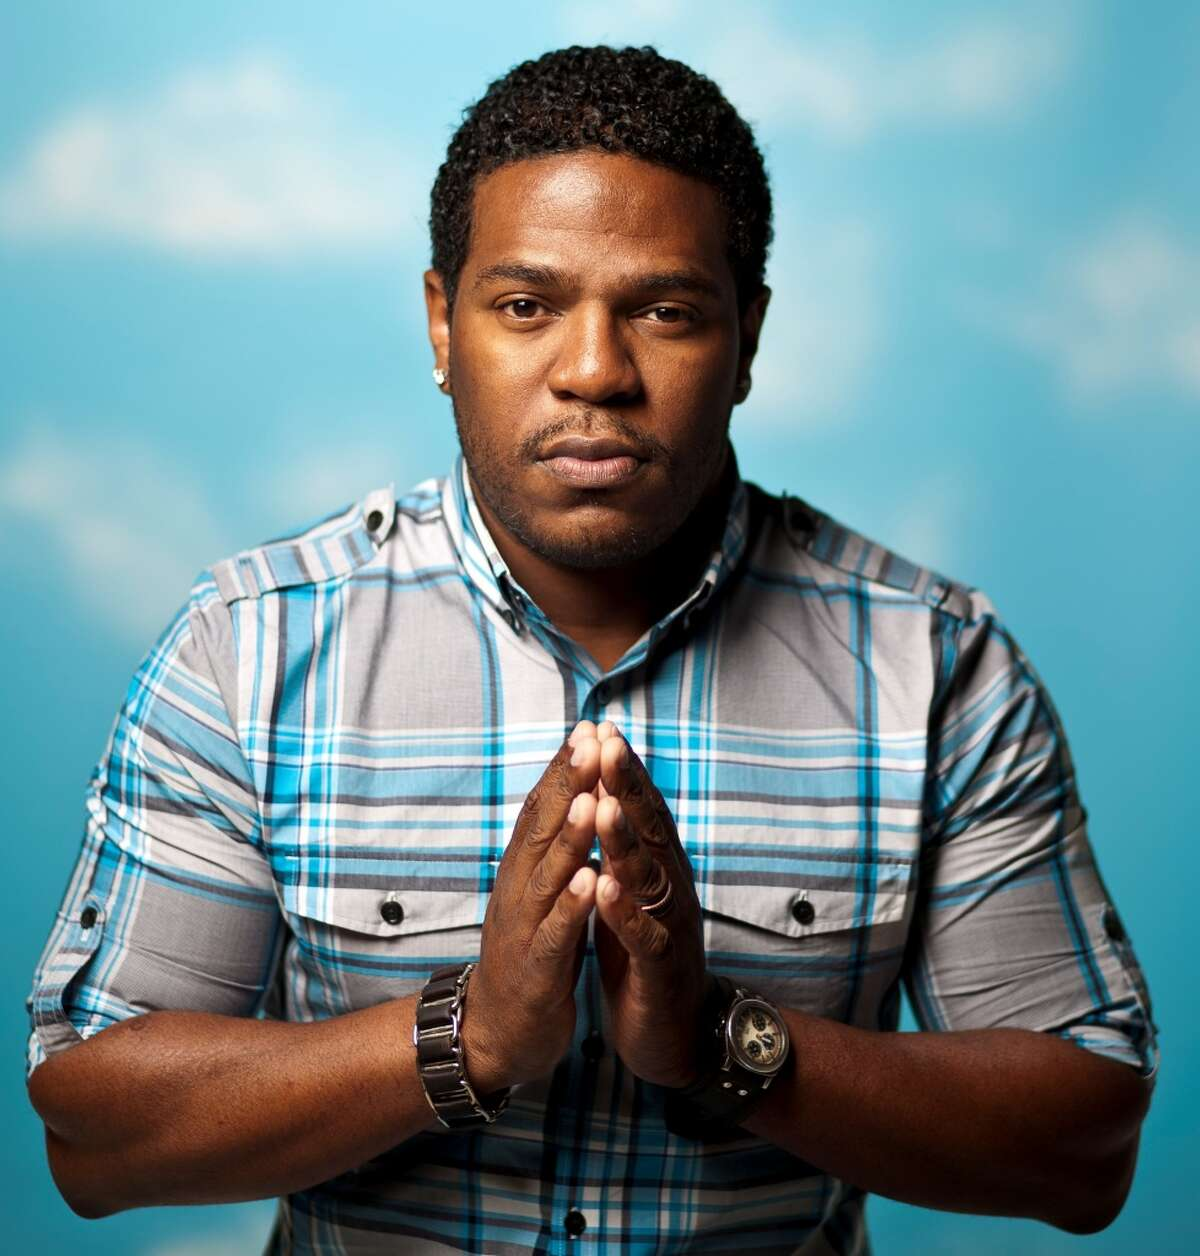 """""""Marathon,"""" Billy Dorsey: Humble resident Dorsey calls his album """"the future of gospel music."""" He's right in many ways. It blends messages of faith with rock, R&B, hip-hop and even dance music. It plays to a church fanbase but isn't overly preachy. Dorsey co-produced tracks on albums from breakout Houston rapper Lecrae, who knows about reaching beyond the church pews."""